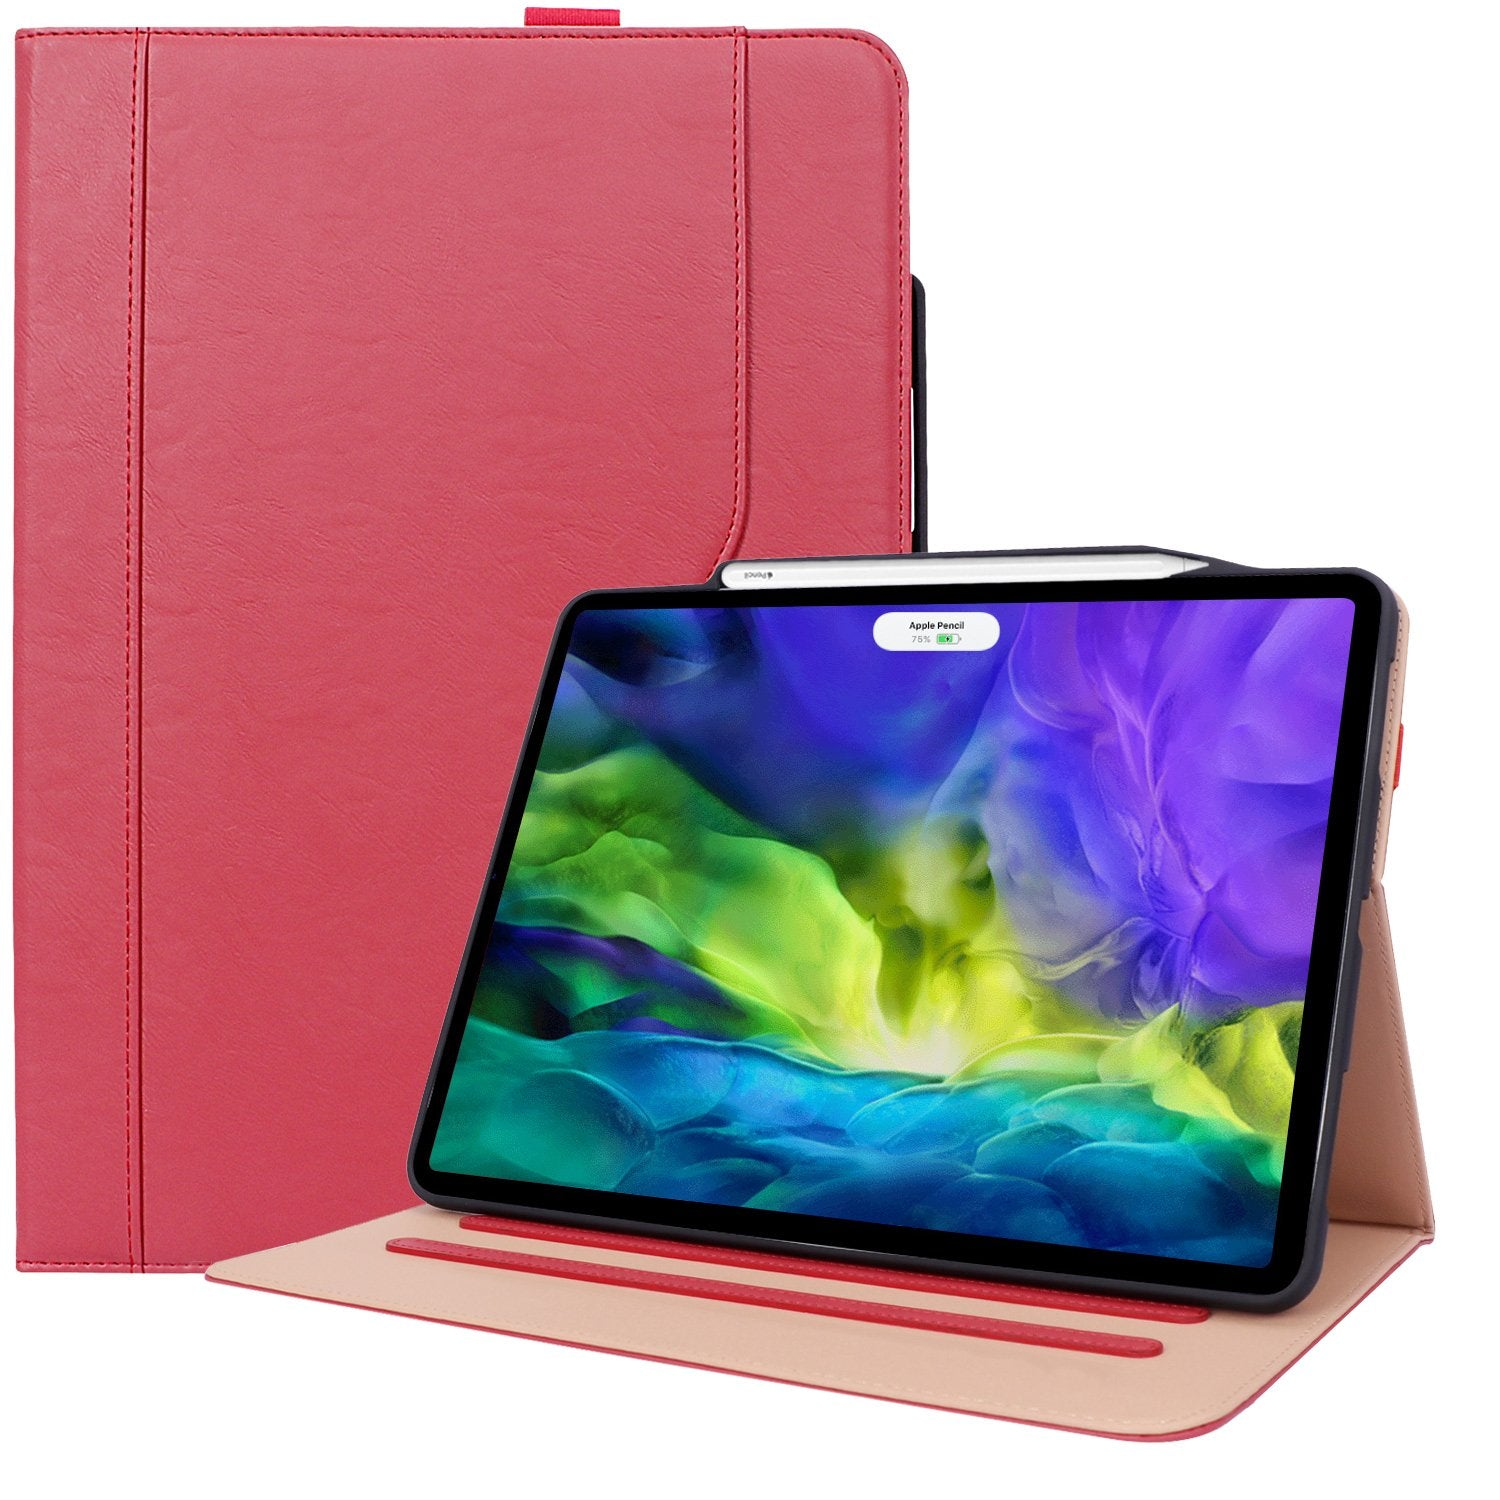 iPad Pro 11 2nd 2020/1st Generation 2018 Leather Folio Case | ProCase